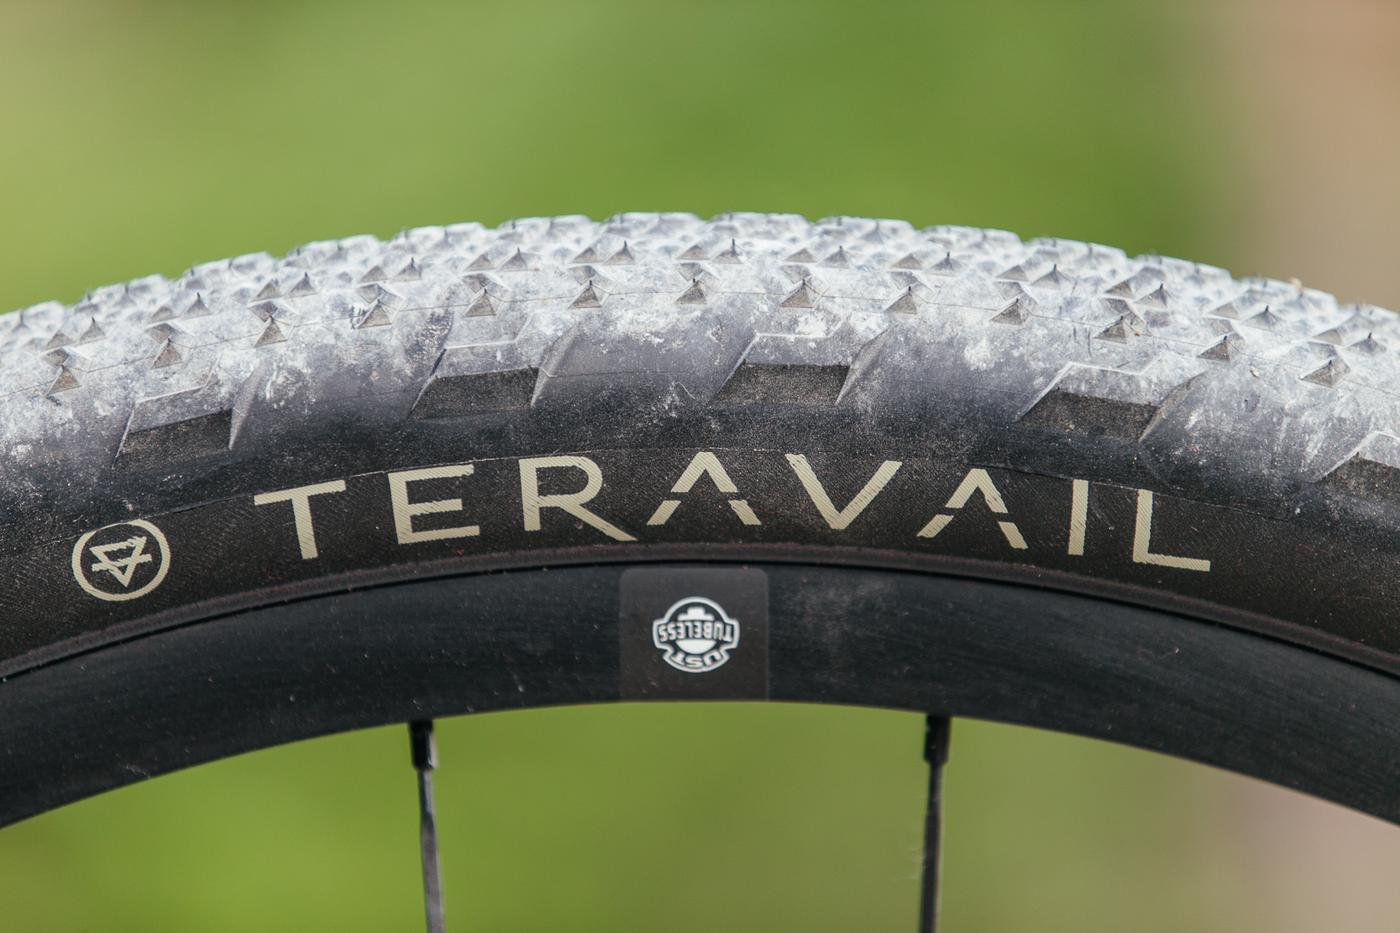 Introducing Teravail Tires: All-Road, Gravel and Off-Road